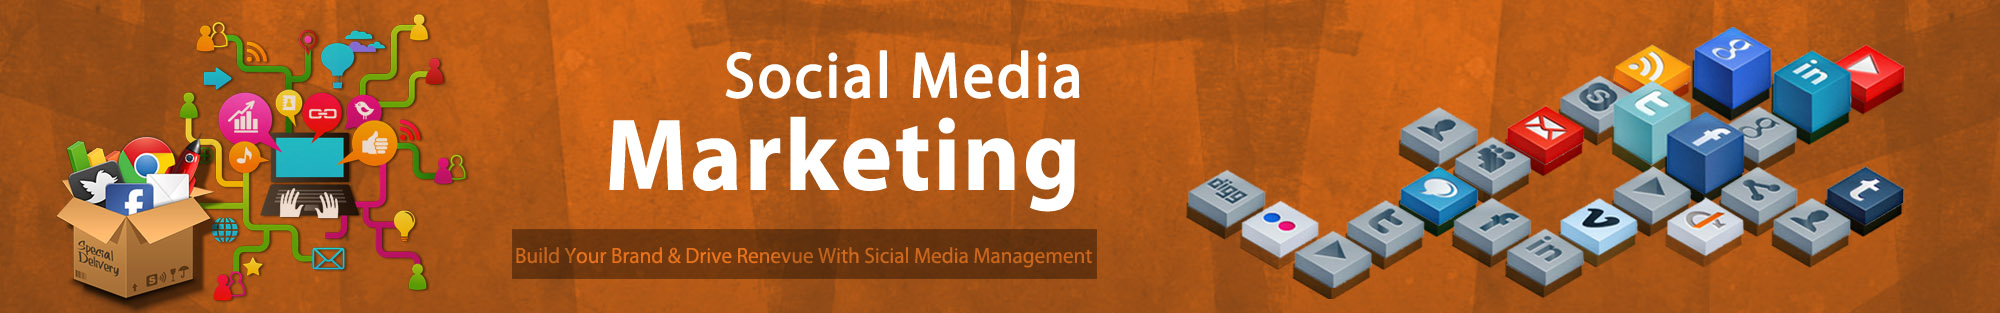 Social Media Marketing Company in Mumbai | Best SMM service